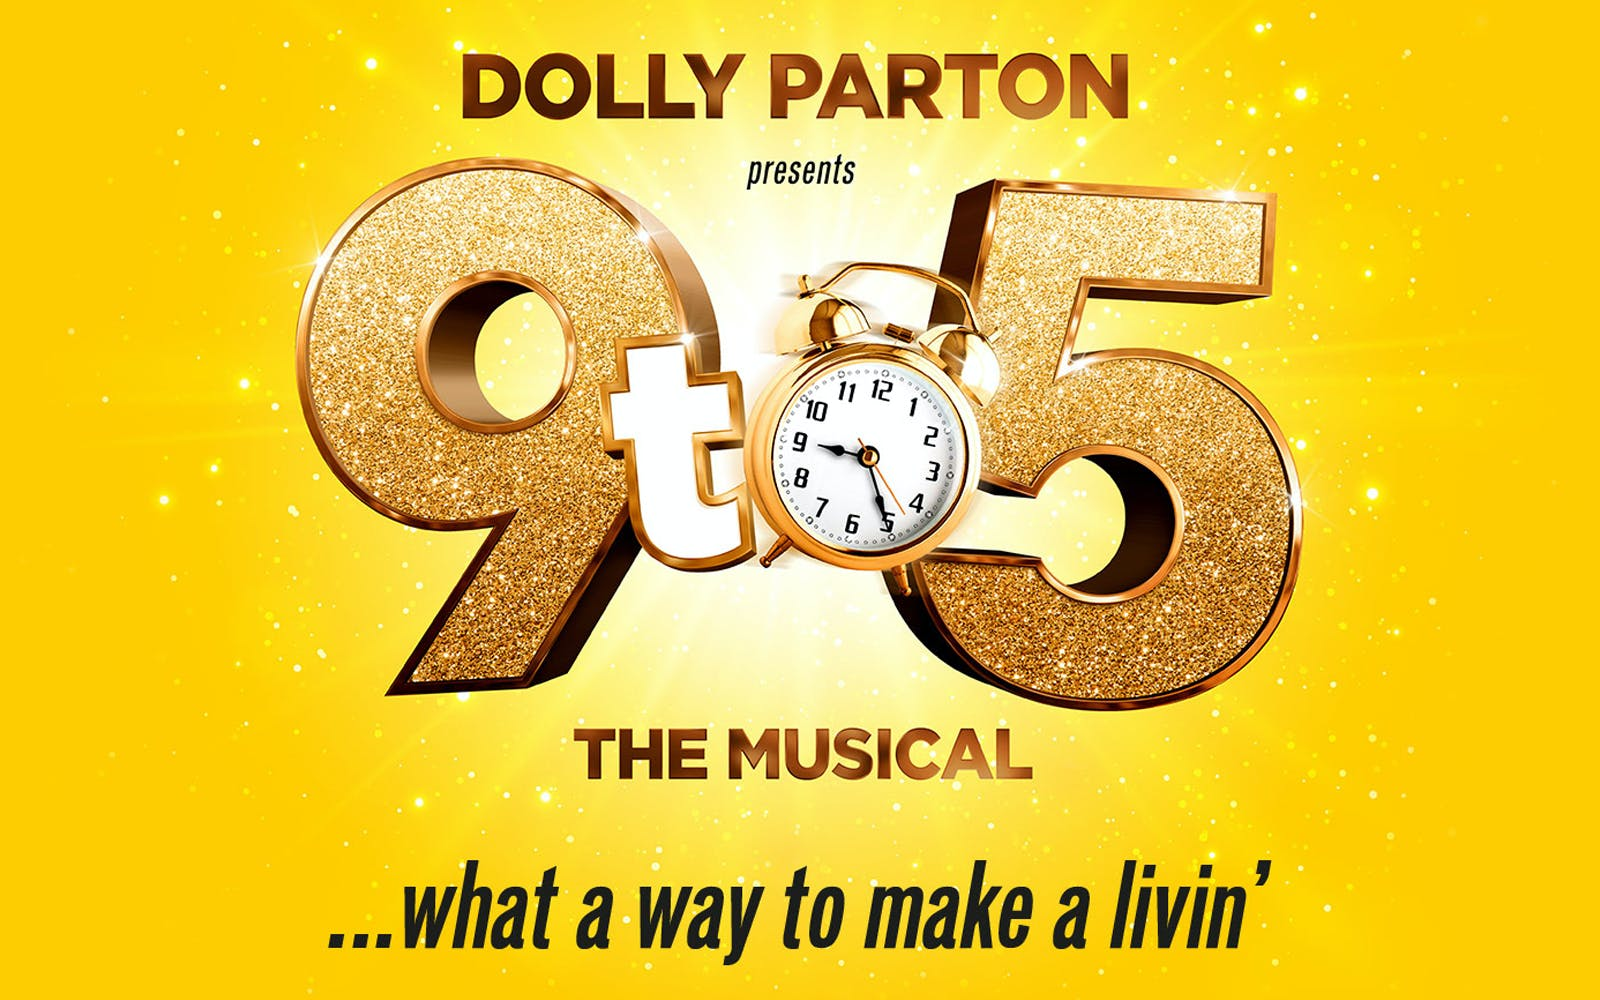 Best west end Shows London 9 to 5 Musical